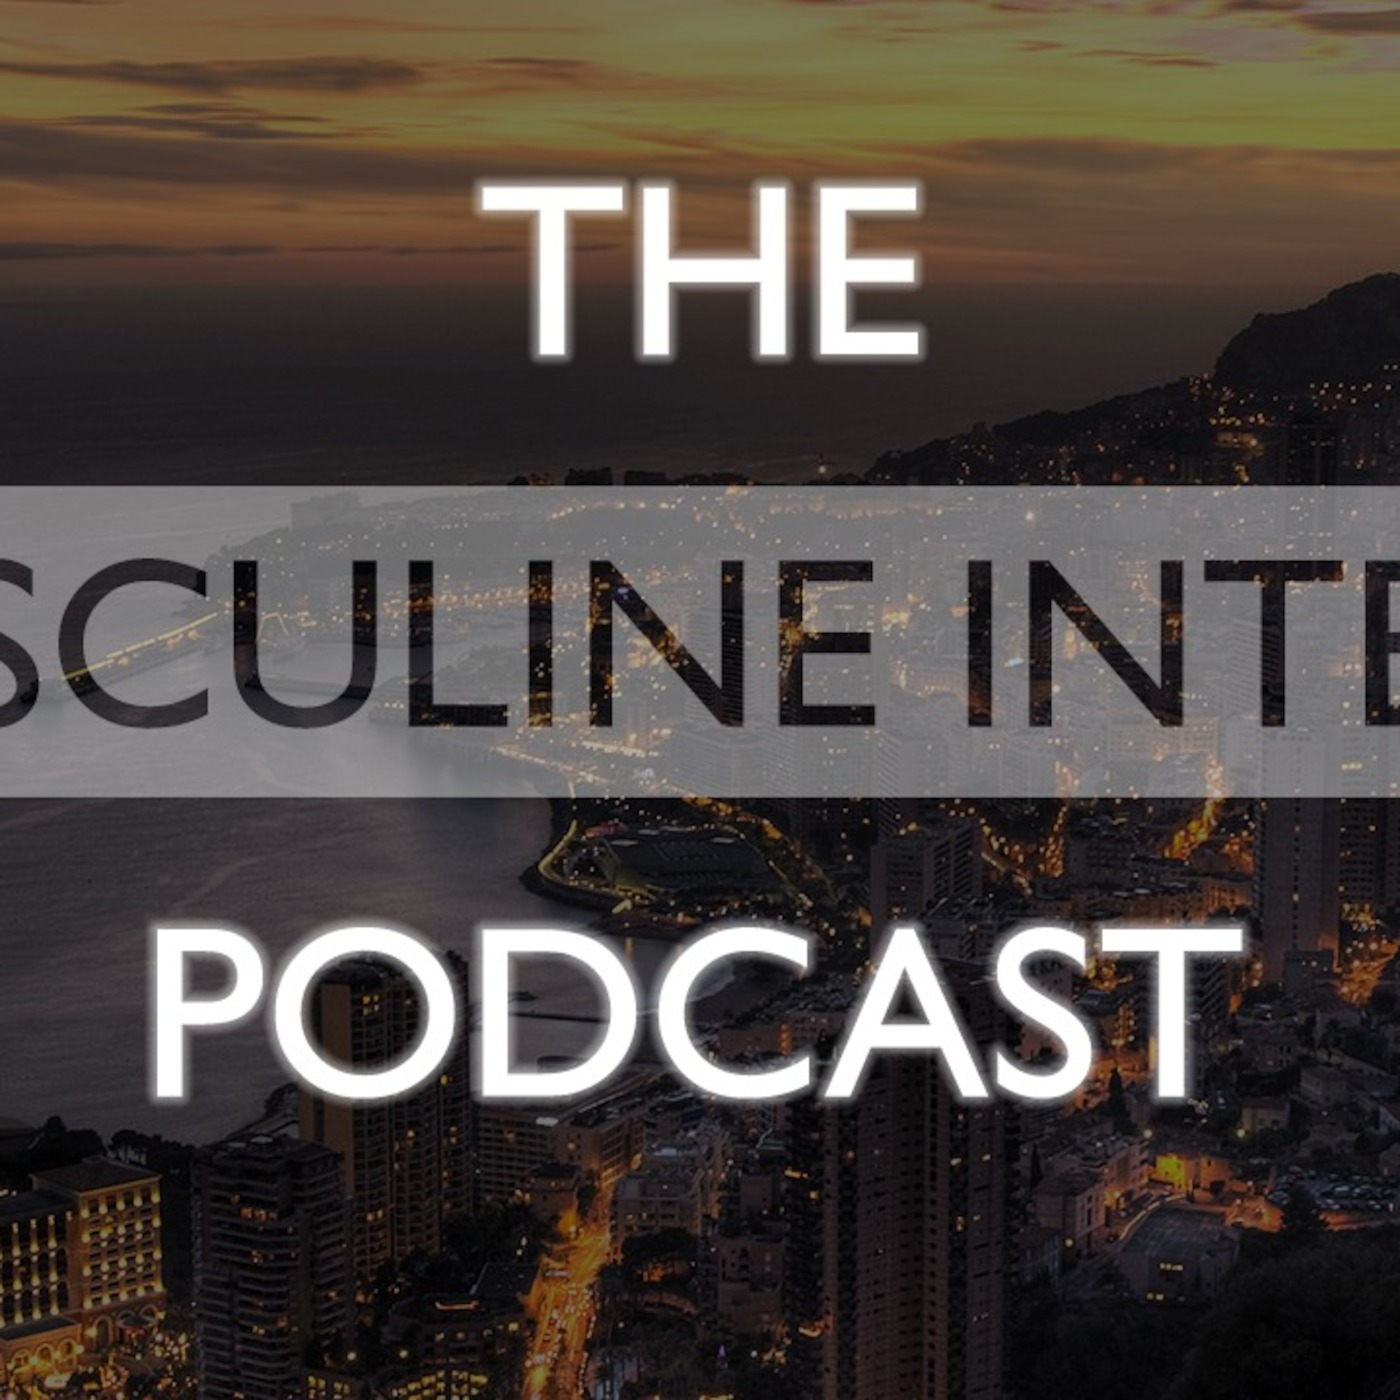 Masculine Intent podcast